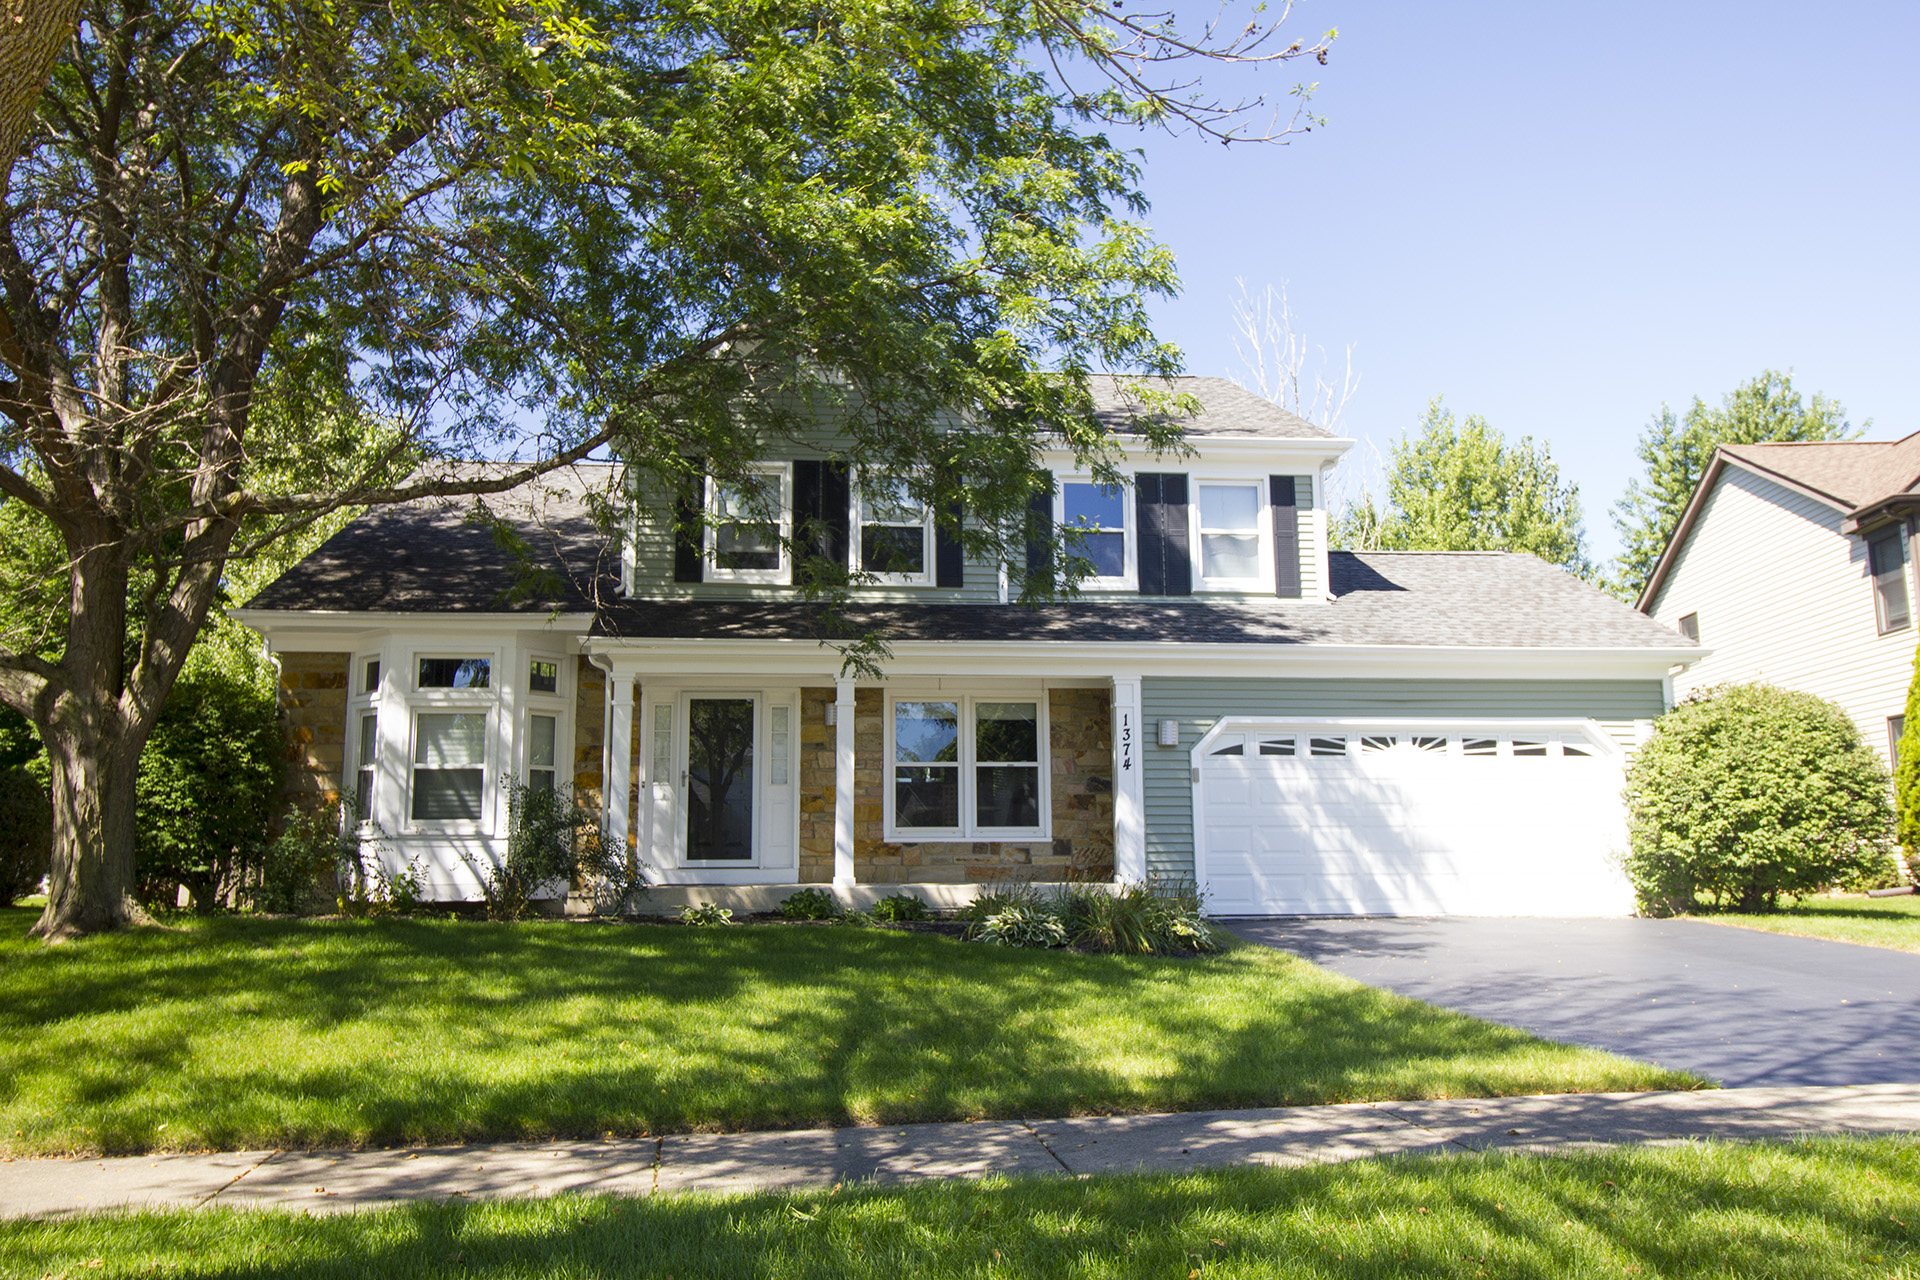 hindu singles in buffalo grove Prairie grove is located in buffalo grove, illinois on buffalo grove road south of route 22 ridgewood - 1 home for sale ridgewood is a single family homes and townhouse community built in the late 1970s.